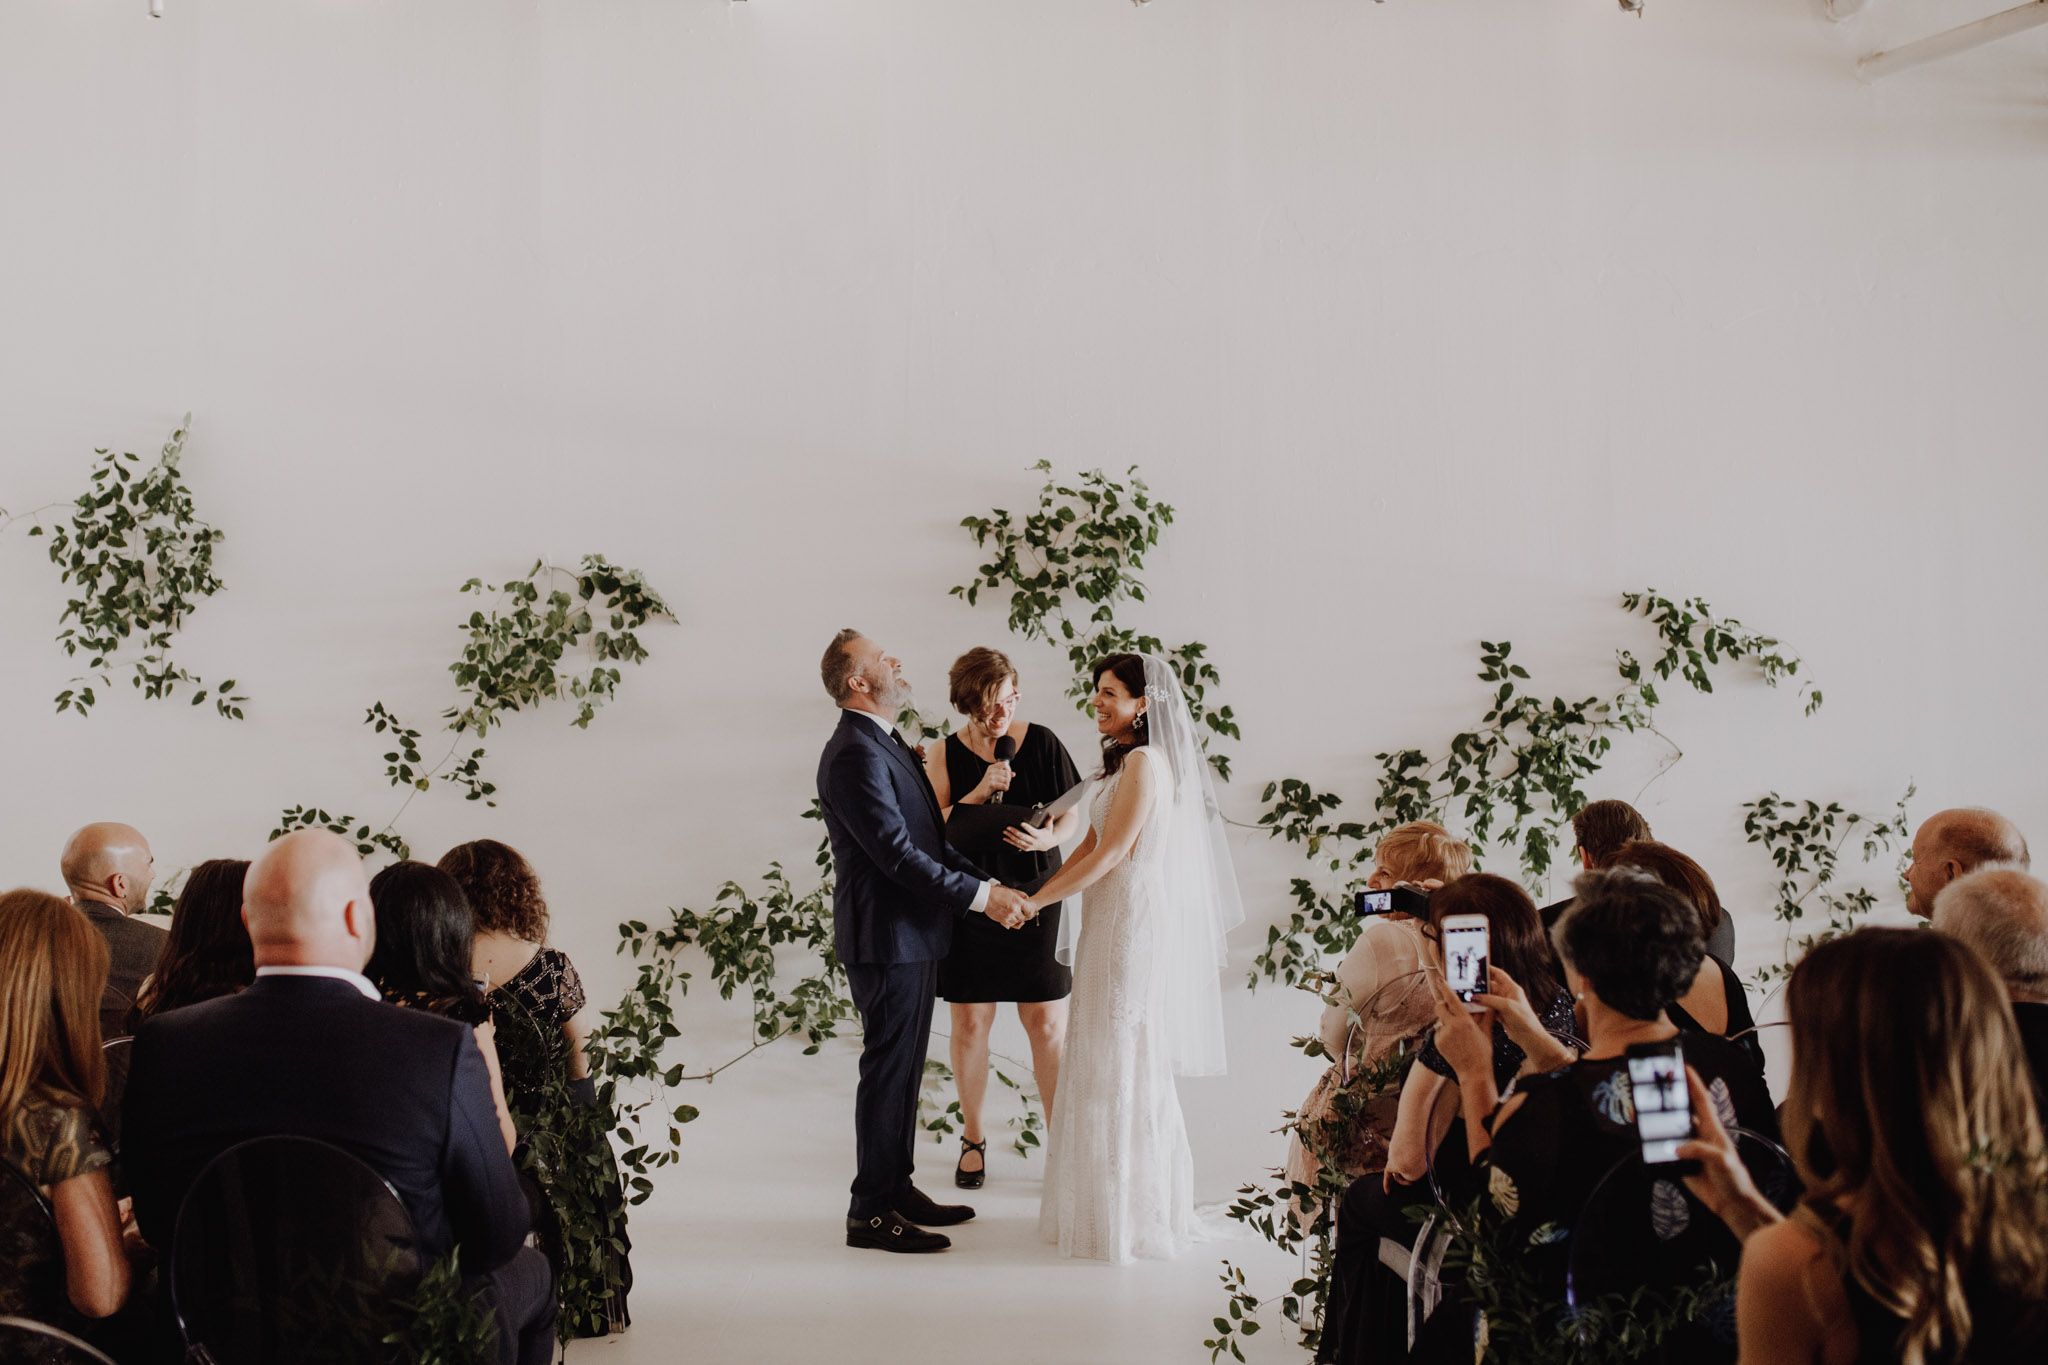 District 28 Wedding Toronto - laughing during ceremony